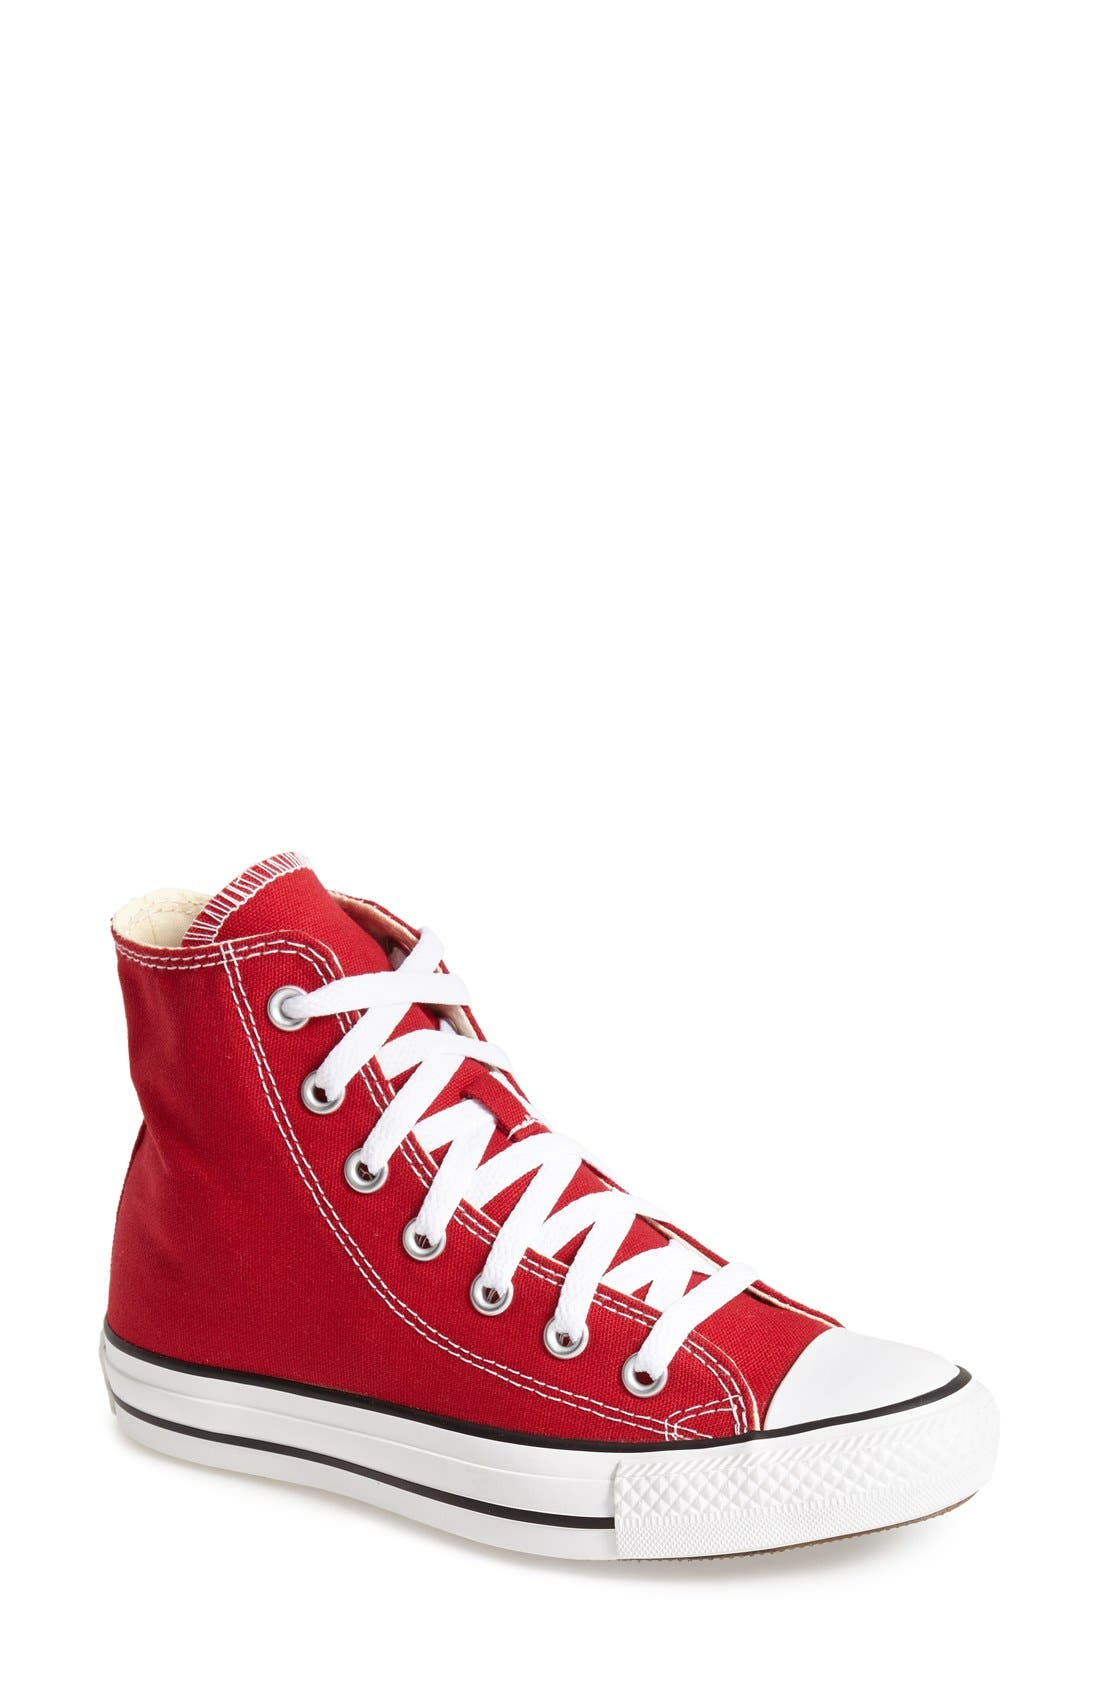 Main Image - Converse Chuck Taylor® All Star® 'Seasonal' High Top Sneaker (Women)